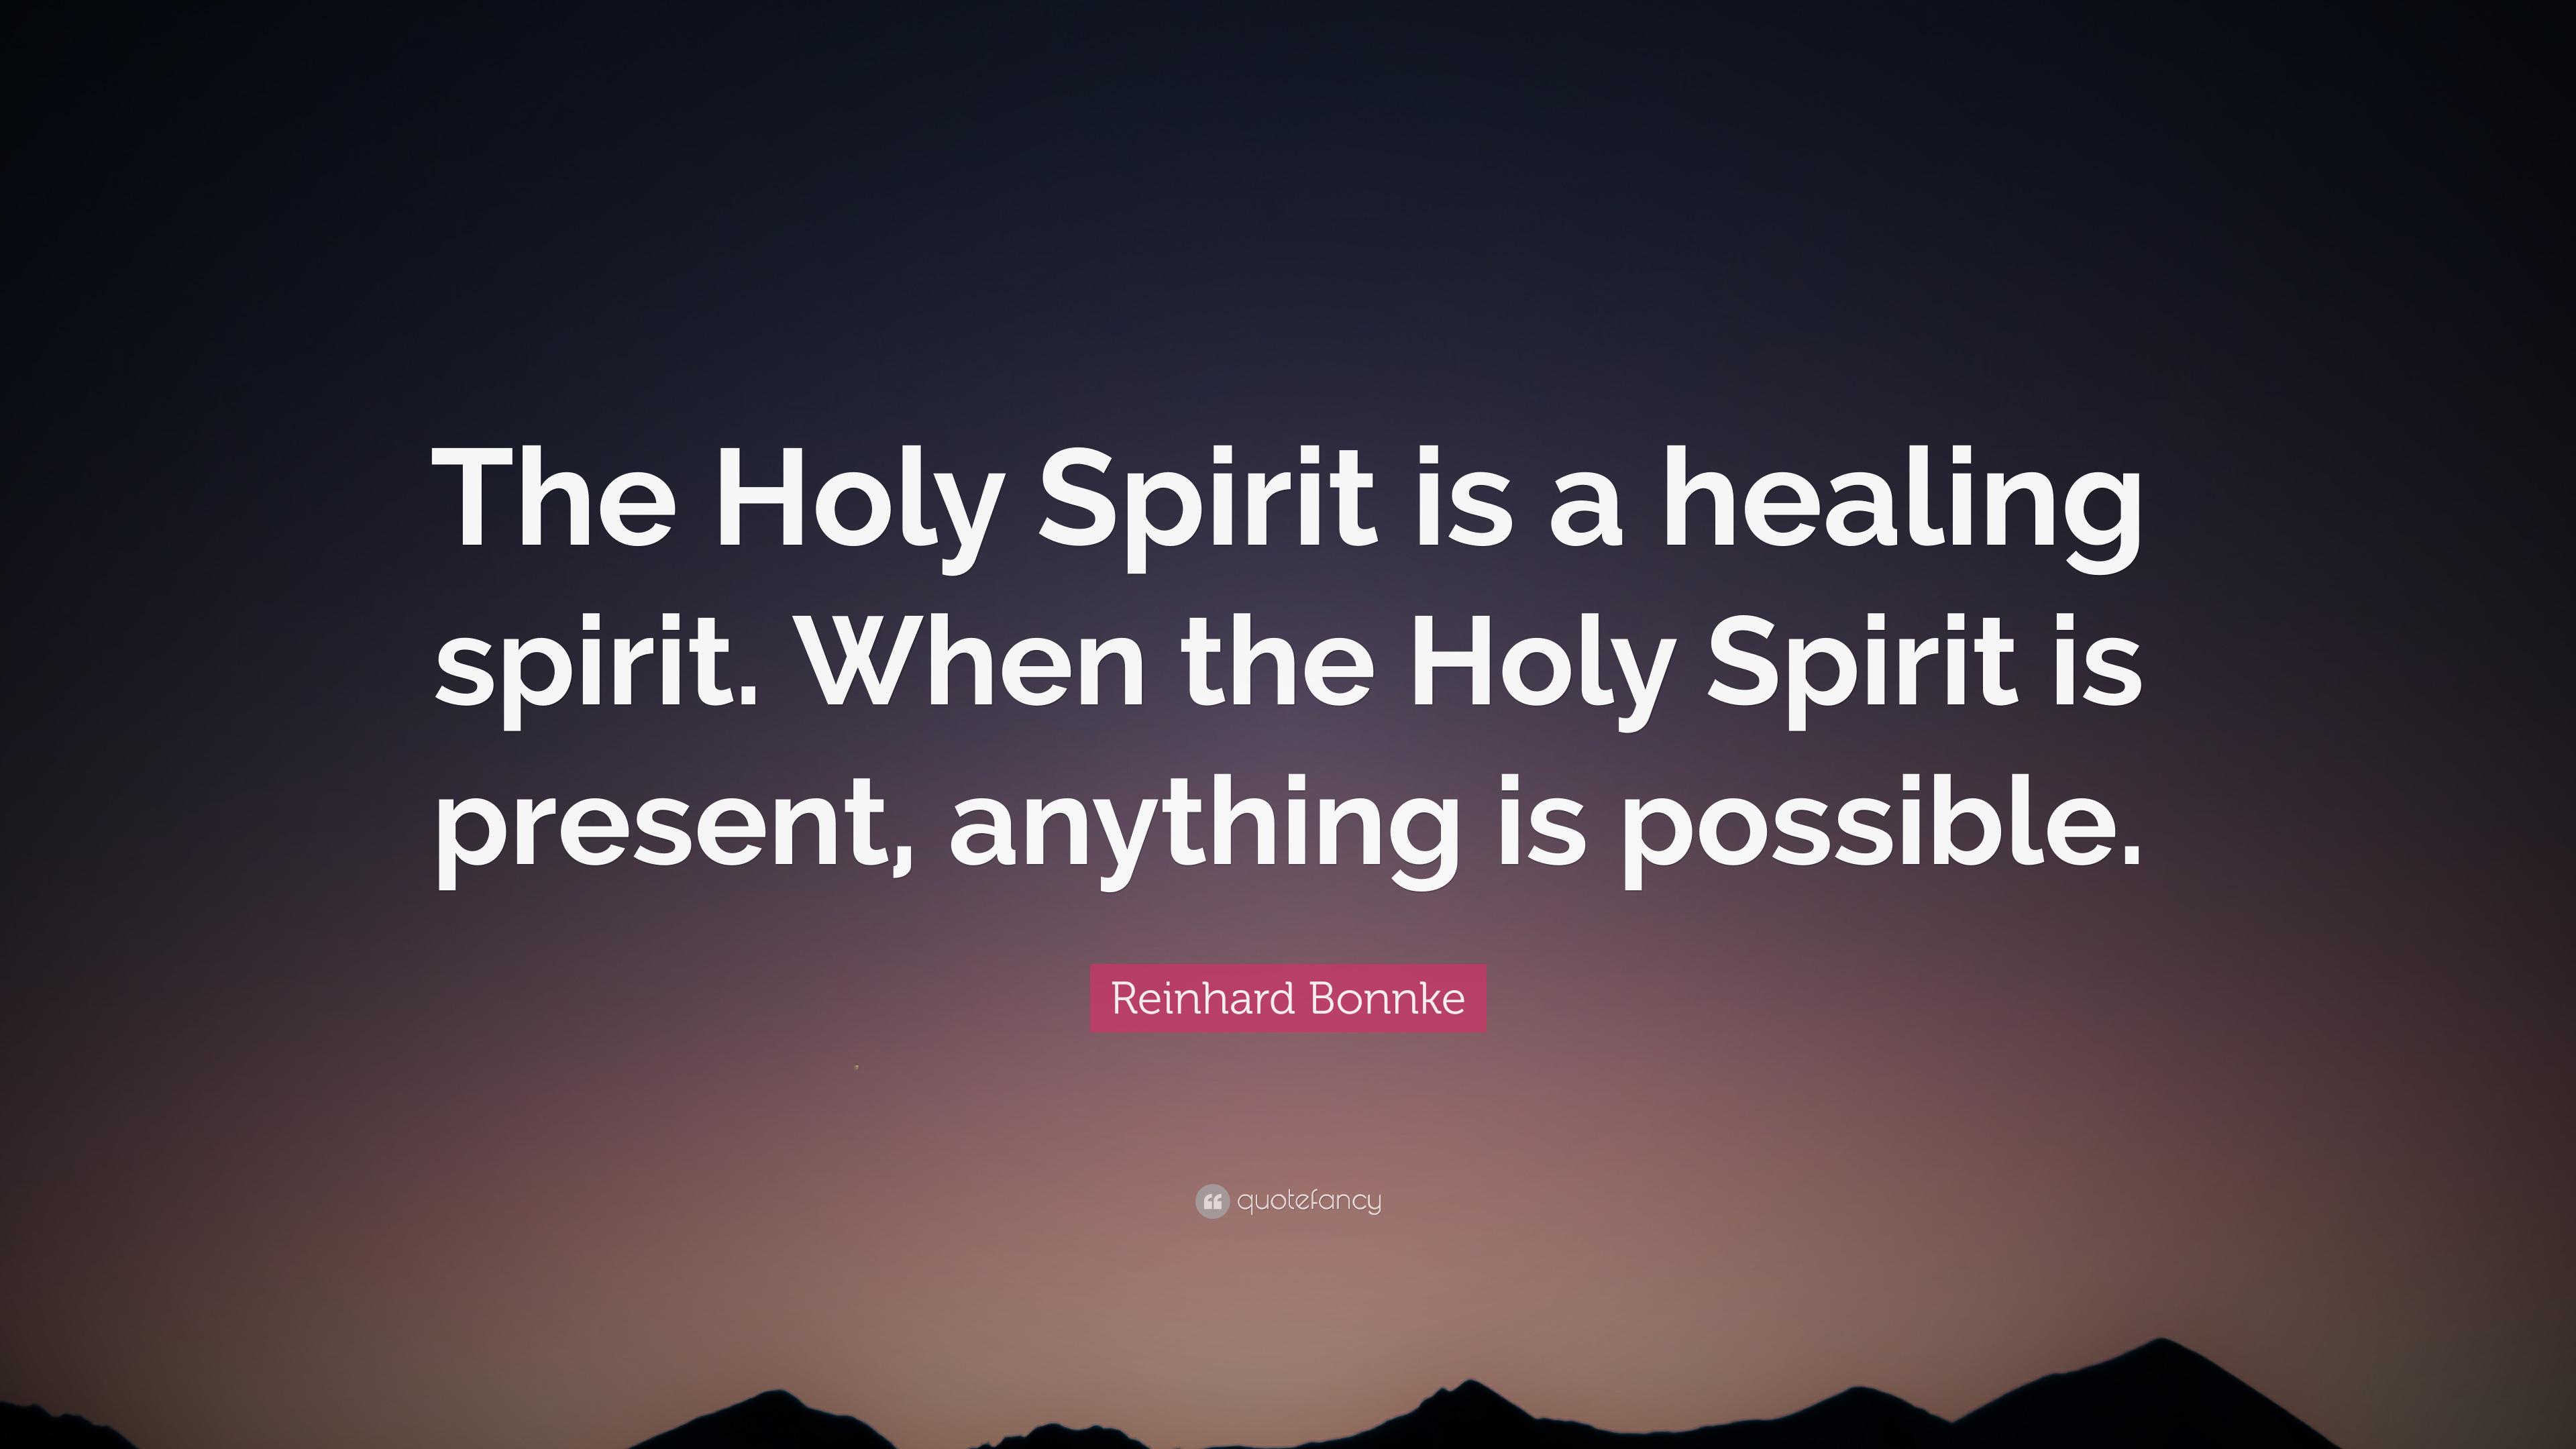 Quotes About The Holy Spirit Quotes About The Holy Spirit Magnificent 18 Beautiful Quotes About